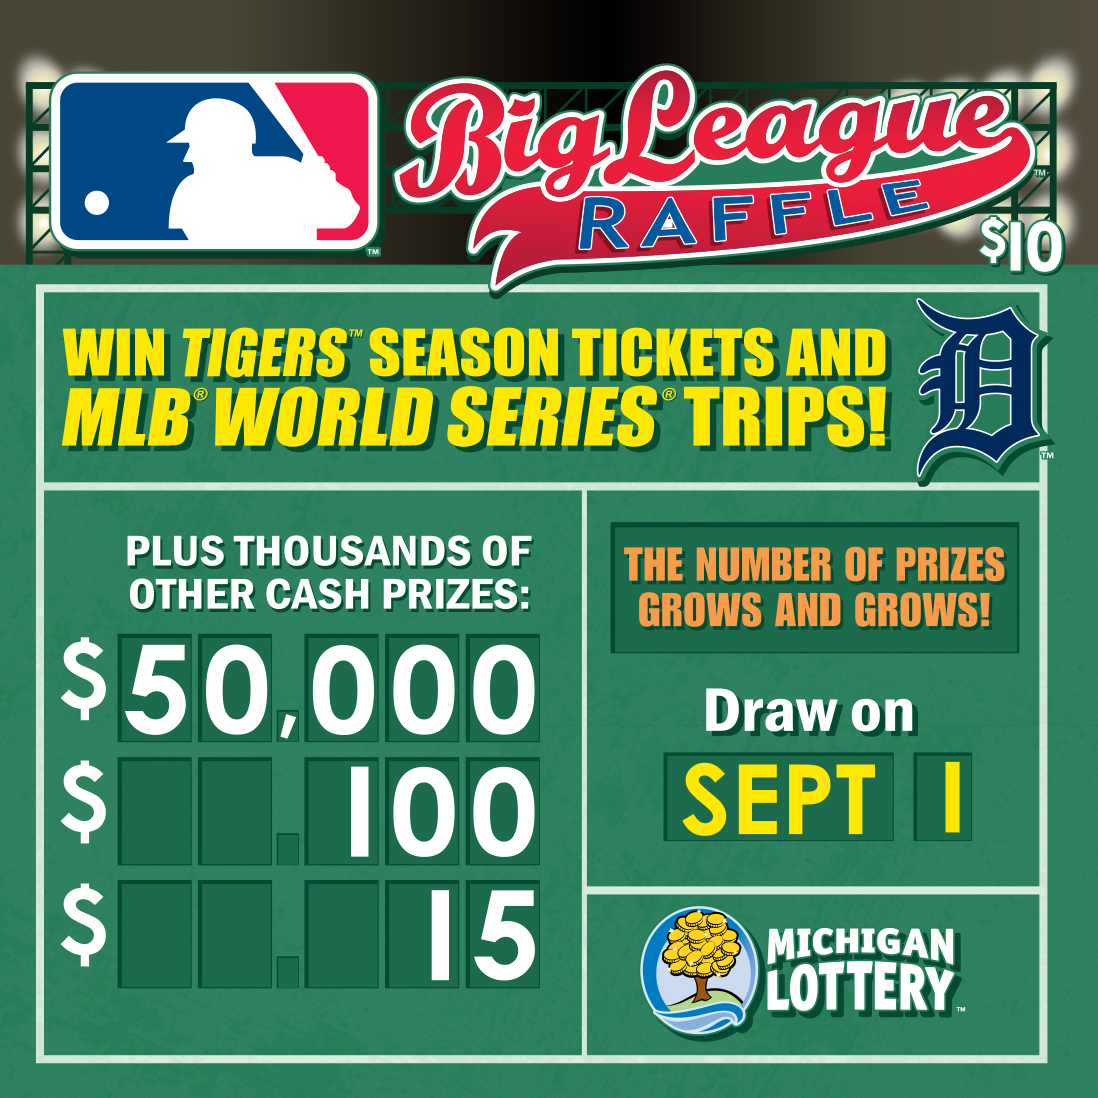 swing batter batter michigan lottery s big league raffle game on swing batter batter michigan lottery s big league raffle game on now